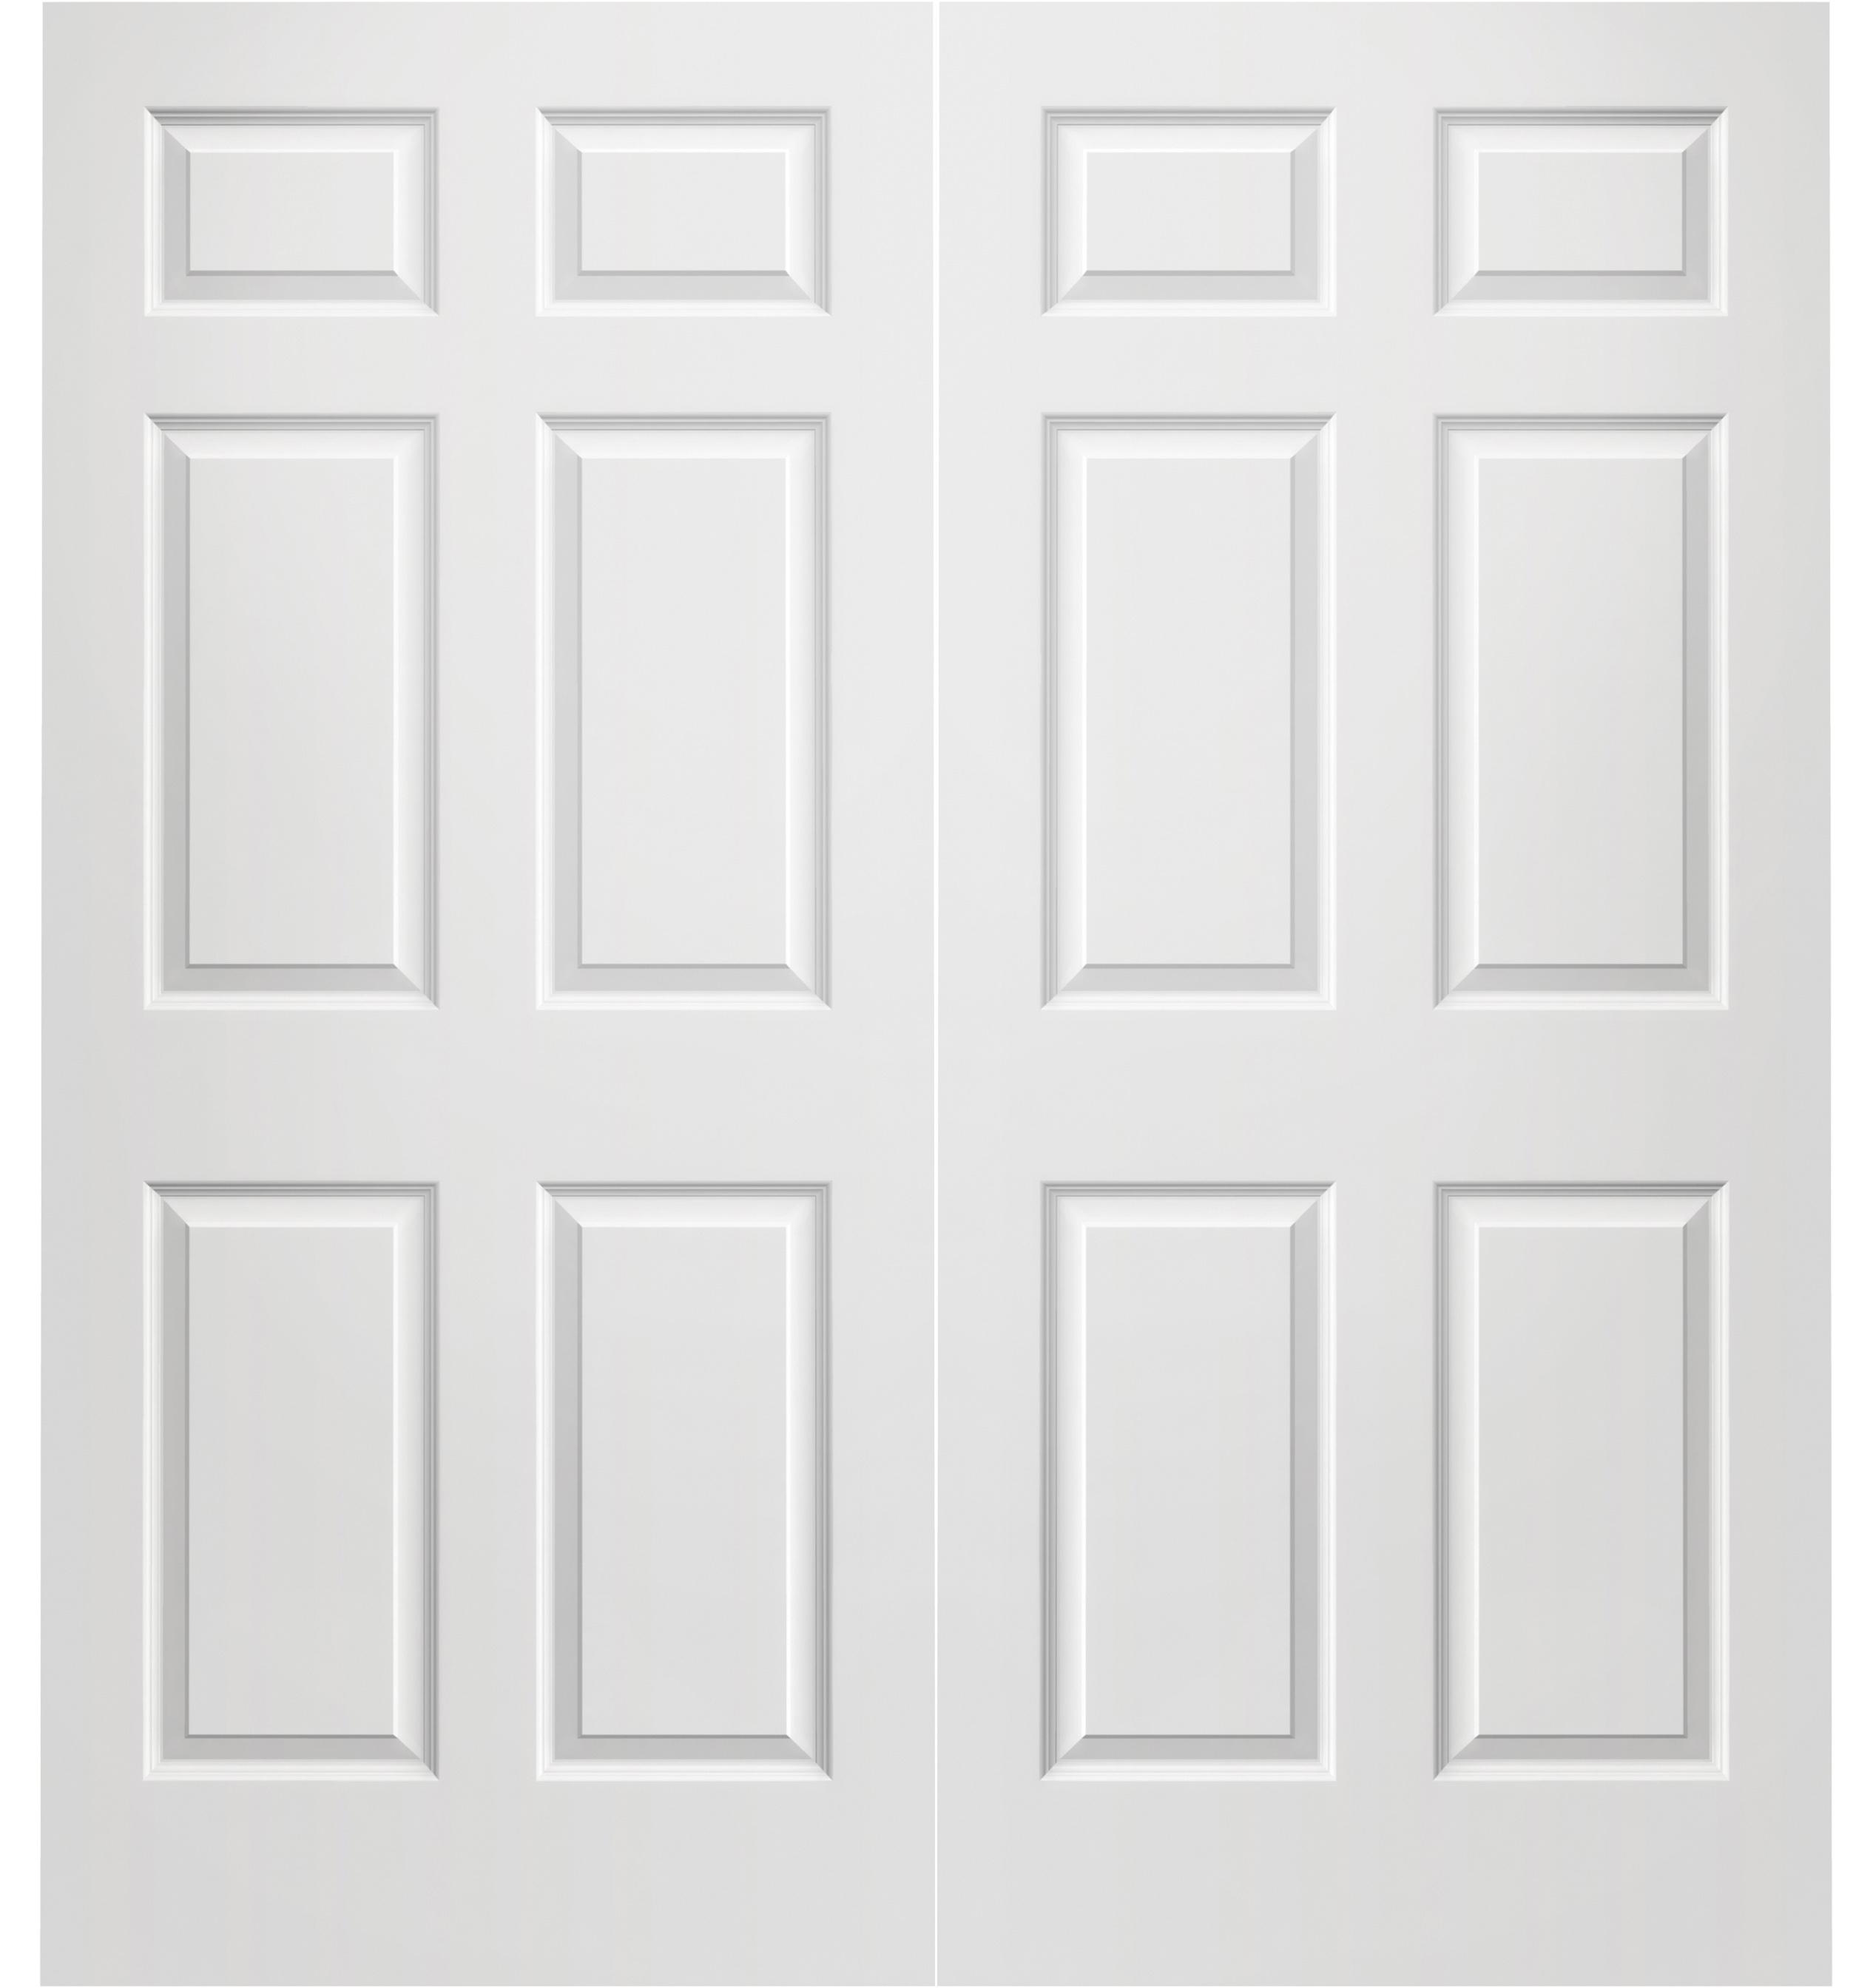 Prehung Interior Double Colonist 6 Panel Door W/ Astragal